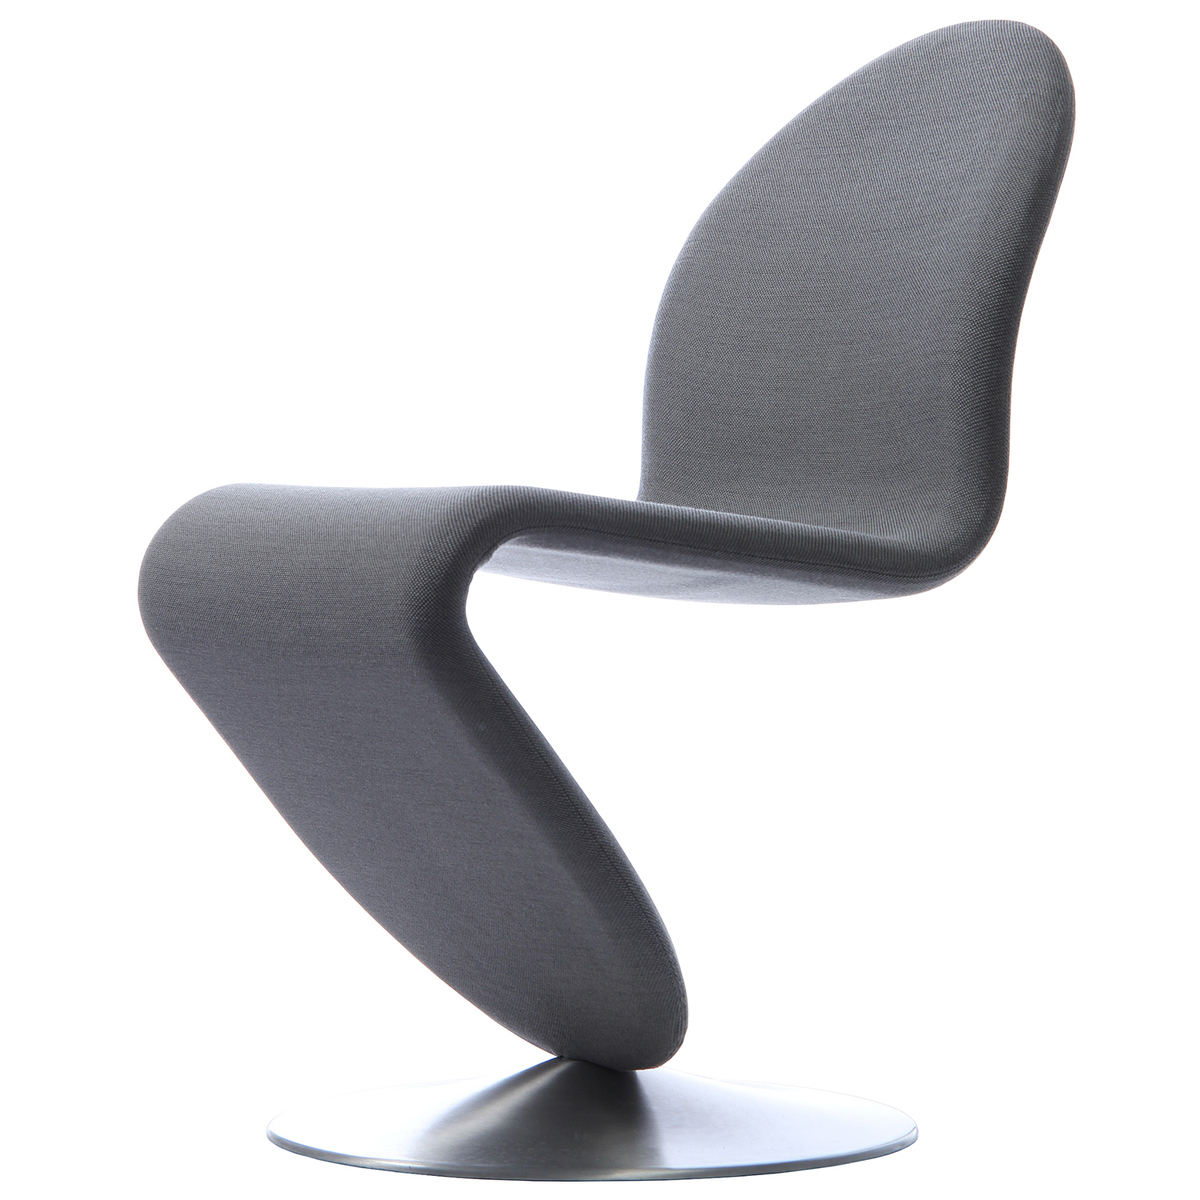 S Shaped Chair System 1 2 3 Dining Chair Grey Fabric